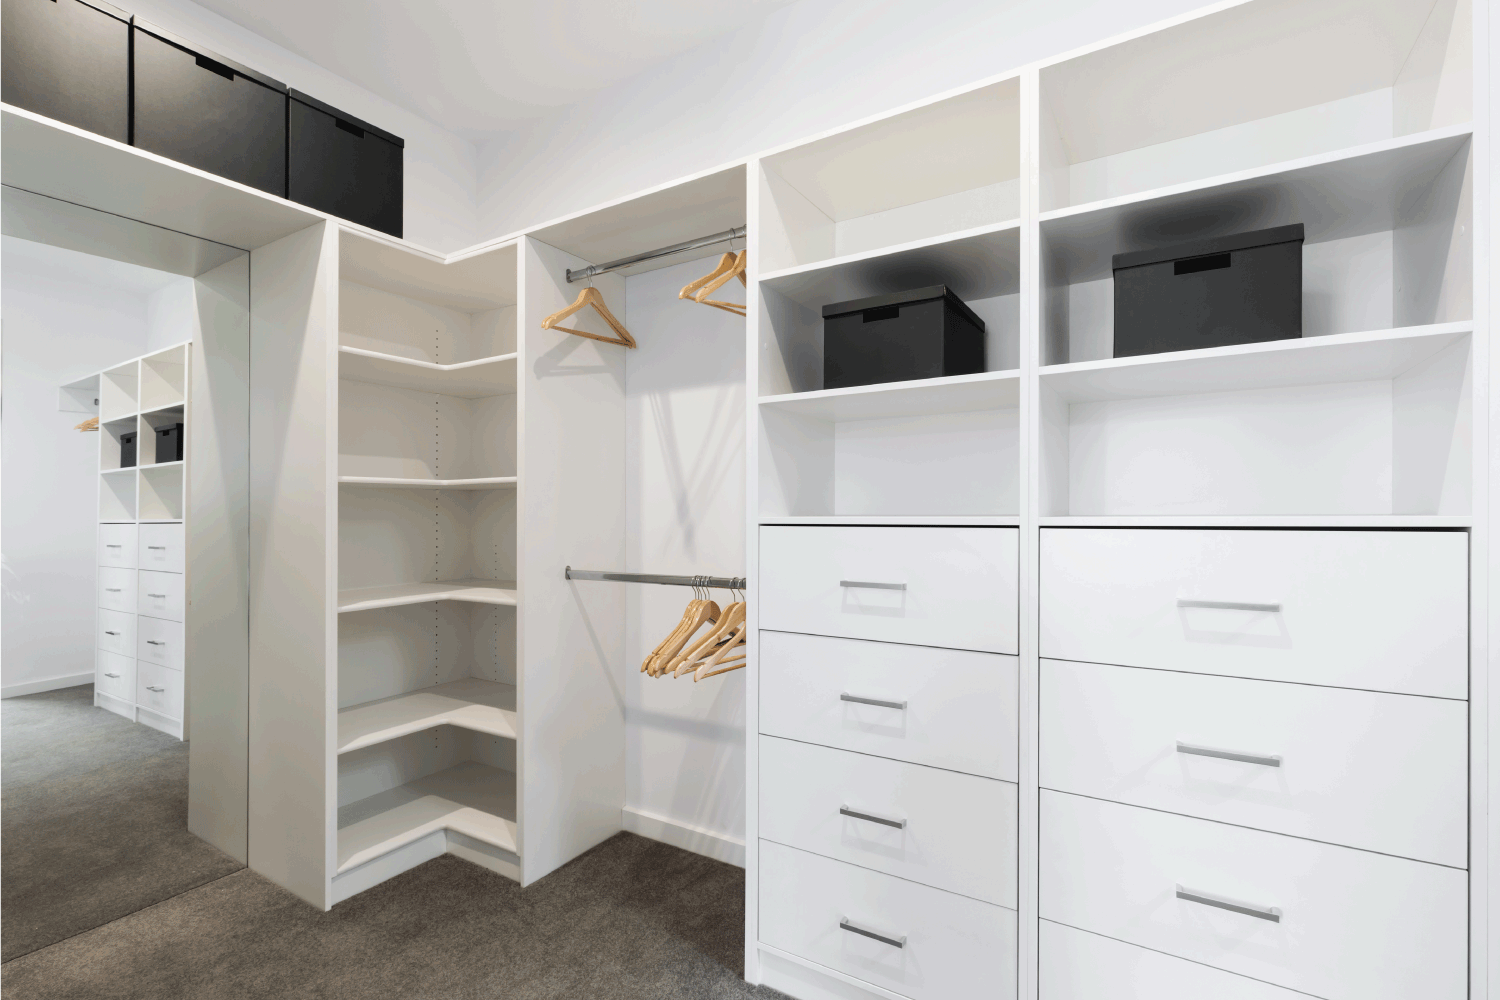 Large walk in wardrobe cabinetry detail in new home. How To Make Use Of A Closet With A Sloped Ceiling